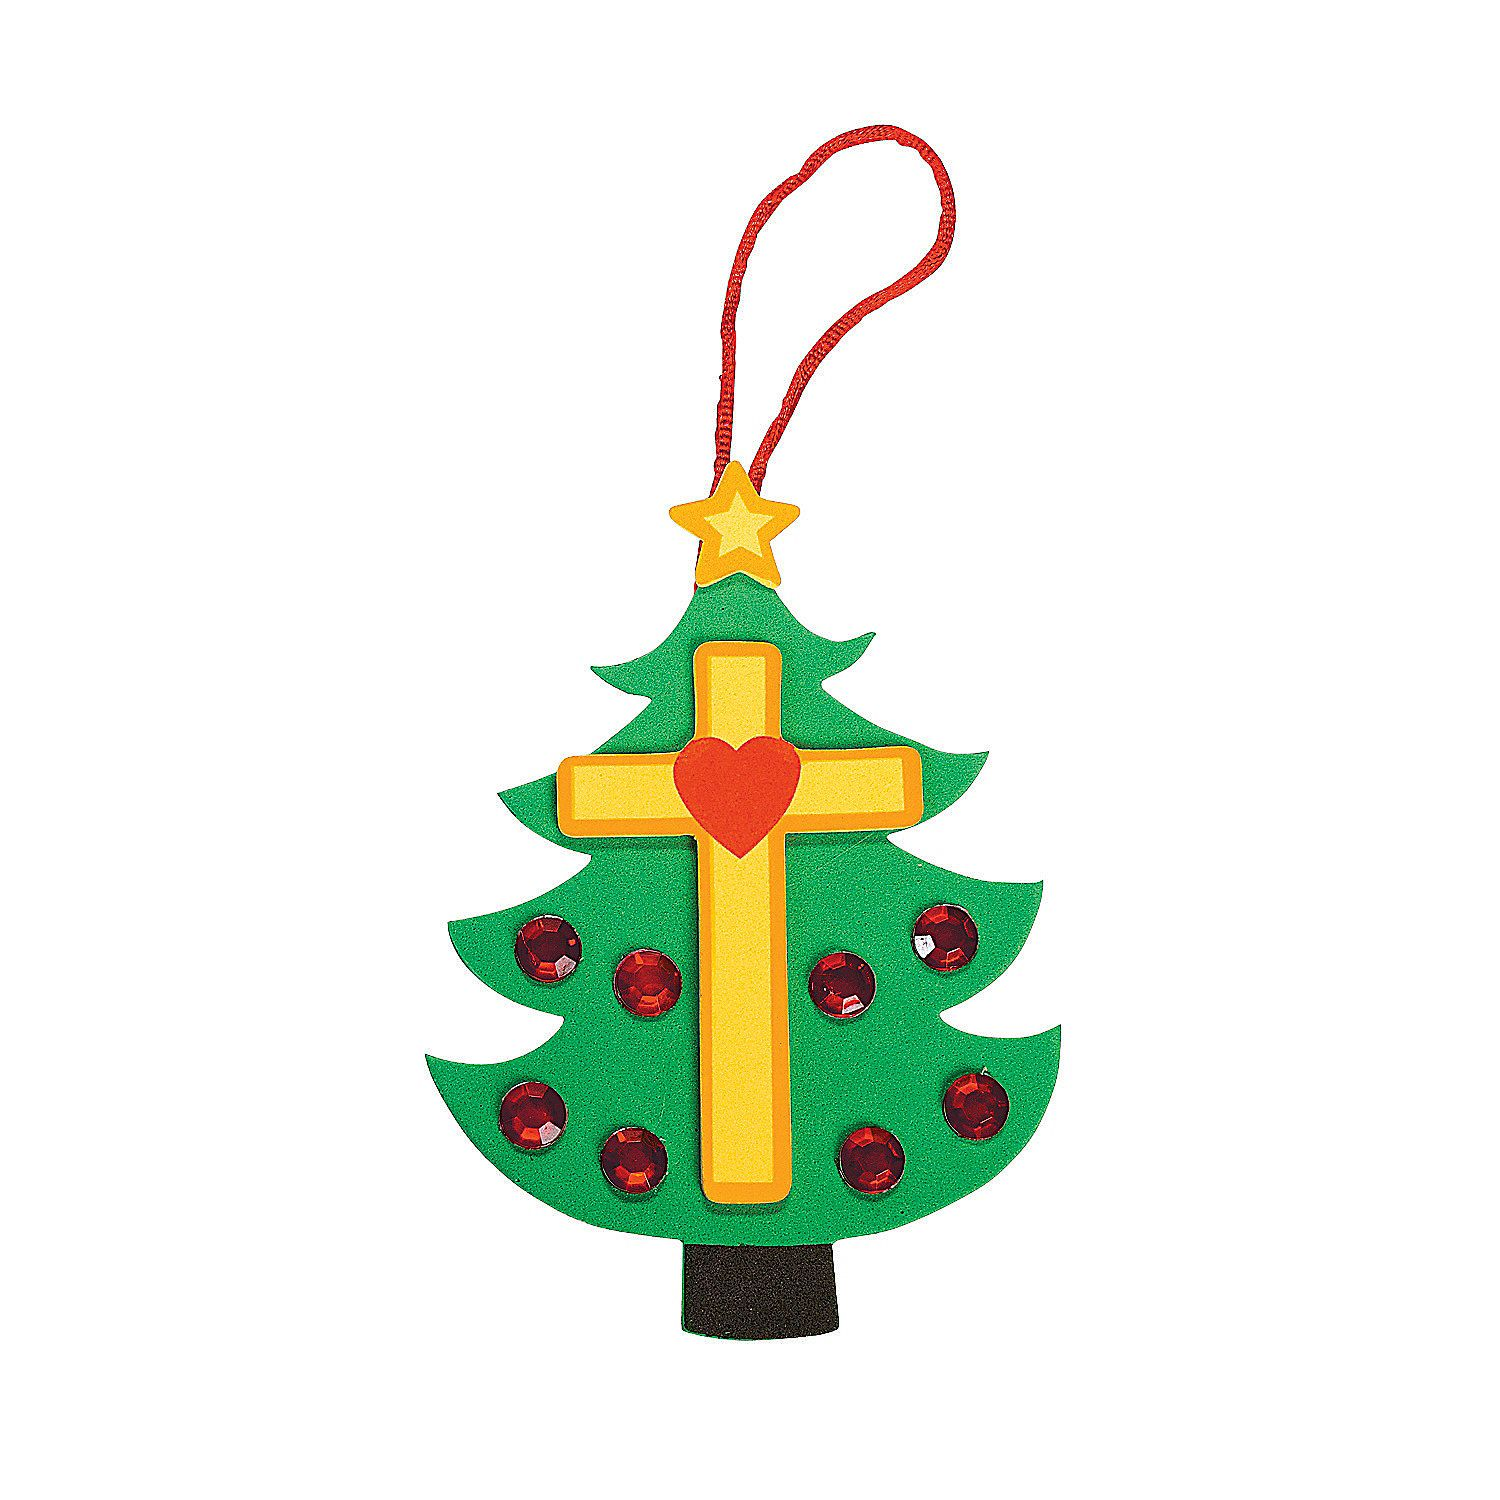 Christmas Tree Cross Foam Ornament Craft Kit  Orientaltradingcom -